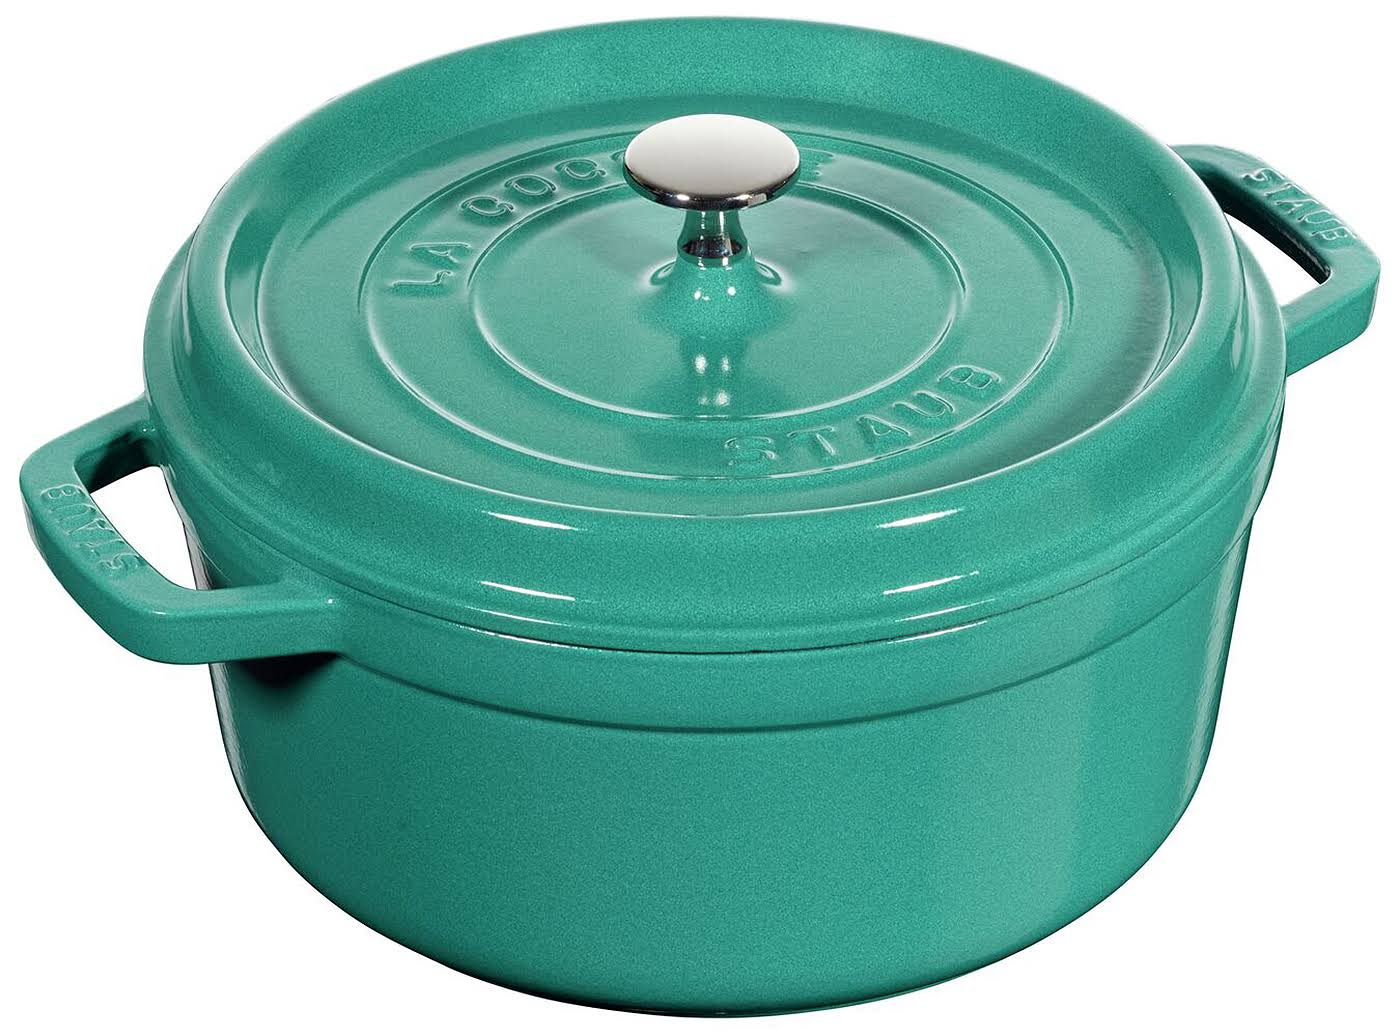 Staub 4qt Round Dutch Oven - Turquoise - Limited Edition